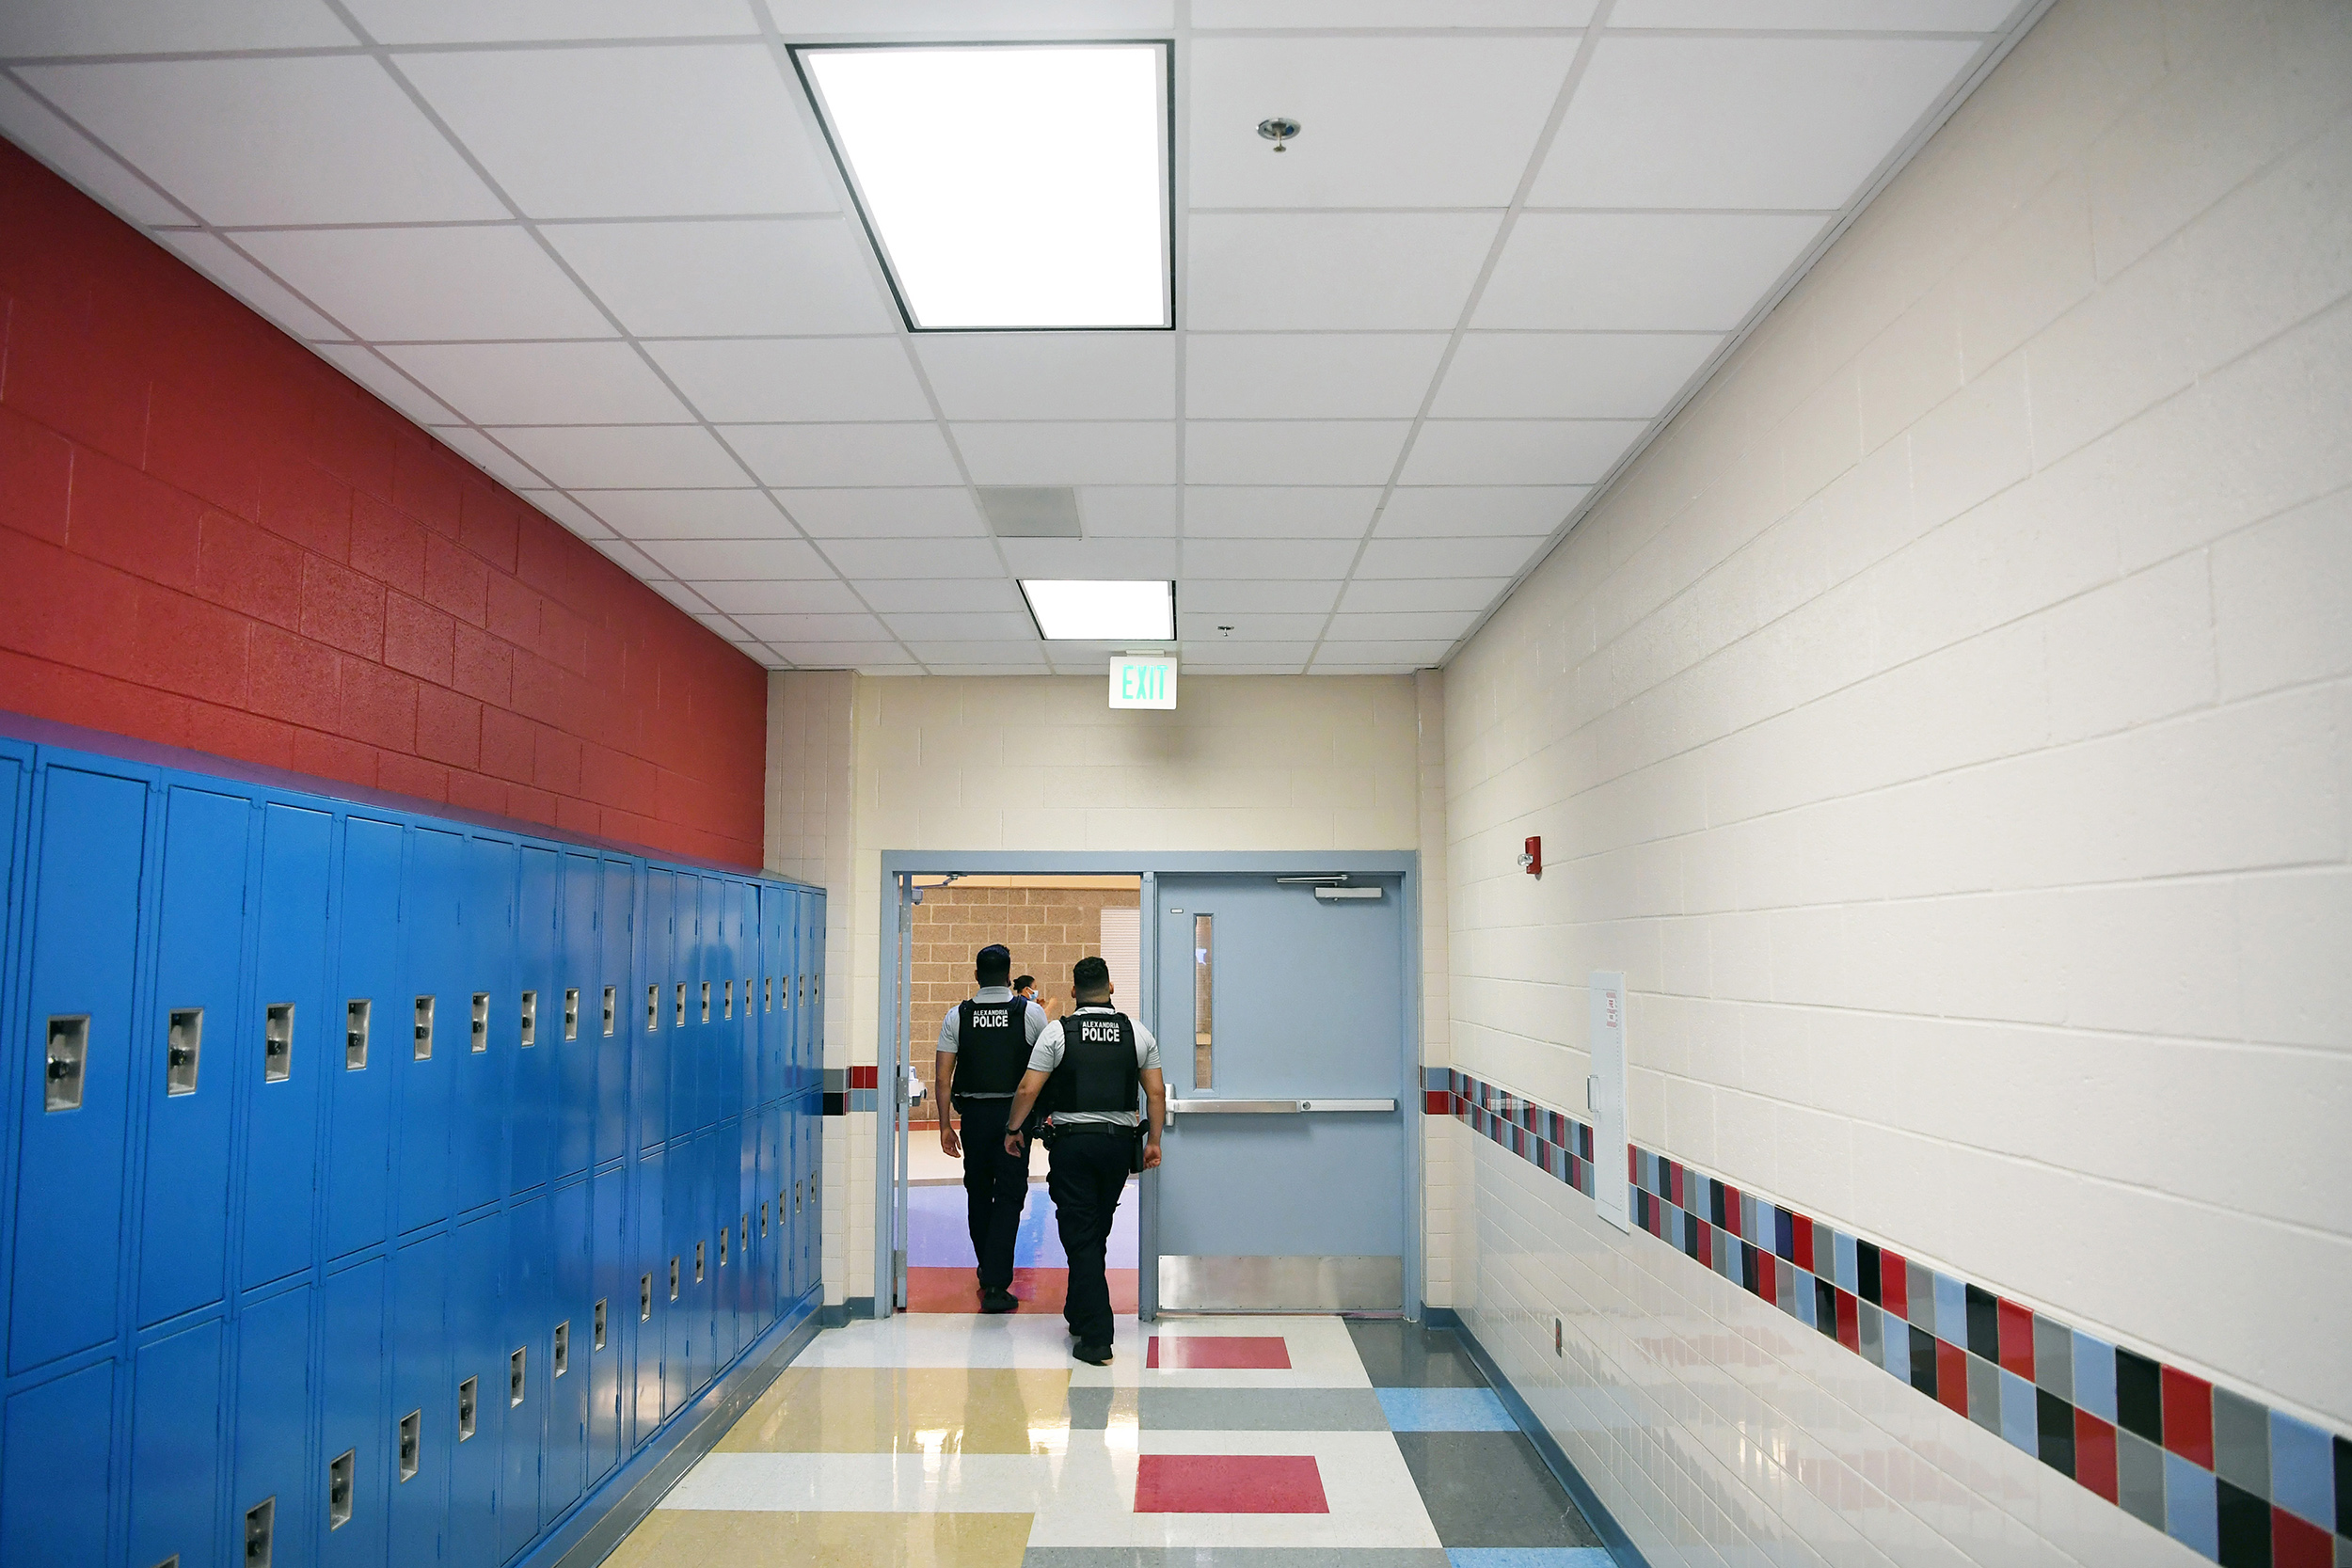 Why many districts are struggling over whether to keep officers in schools